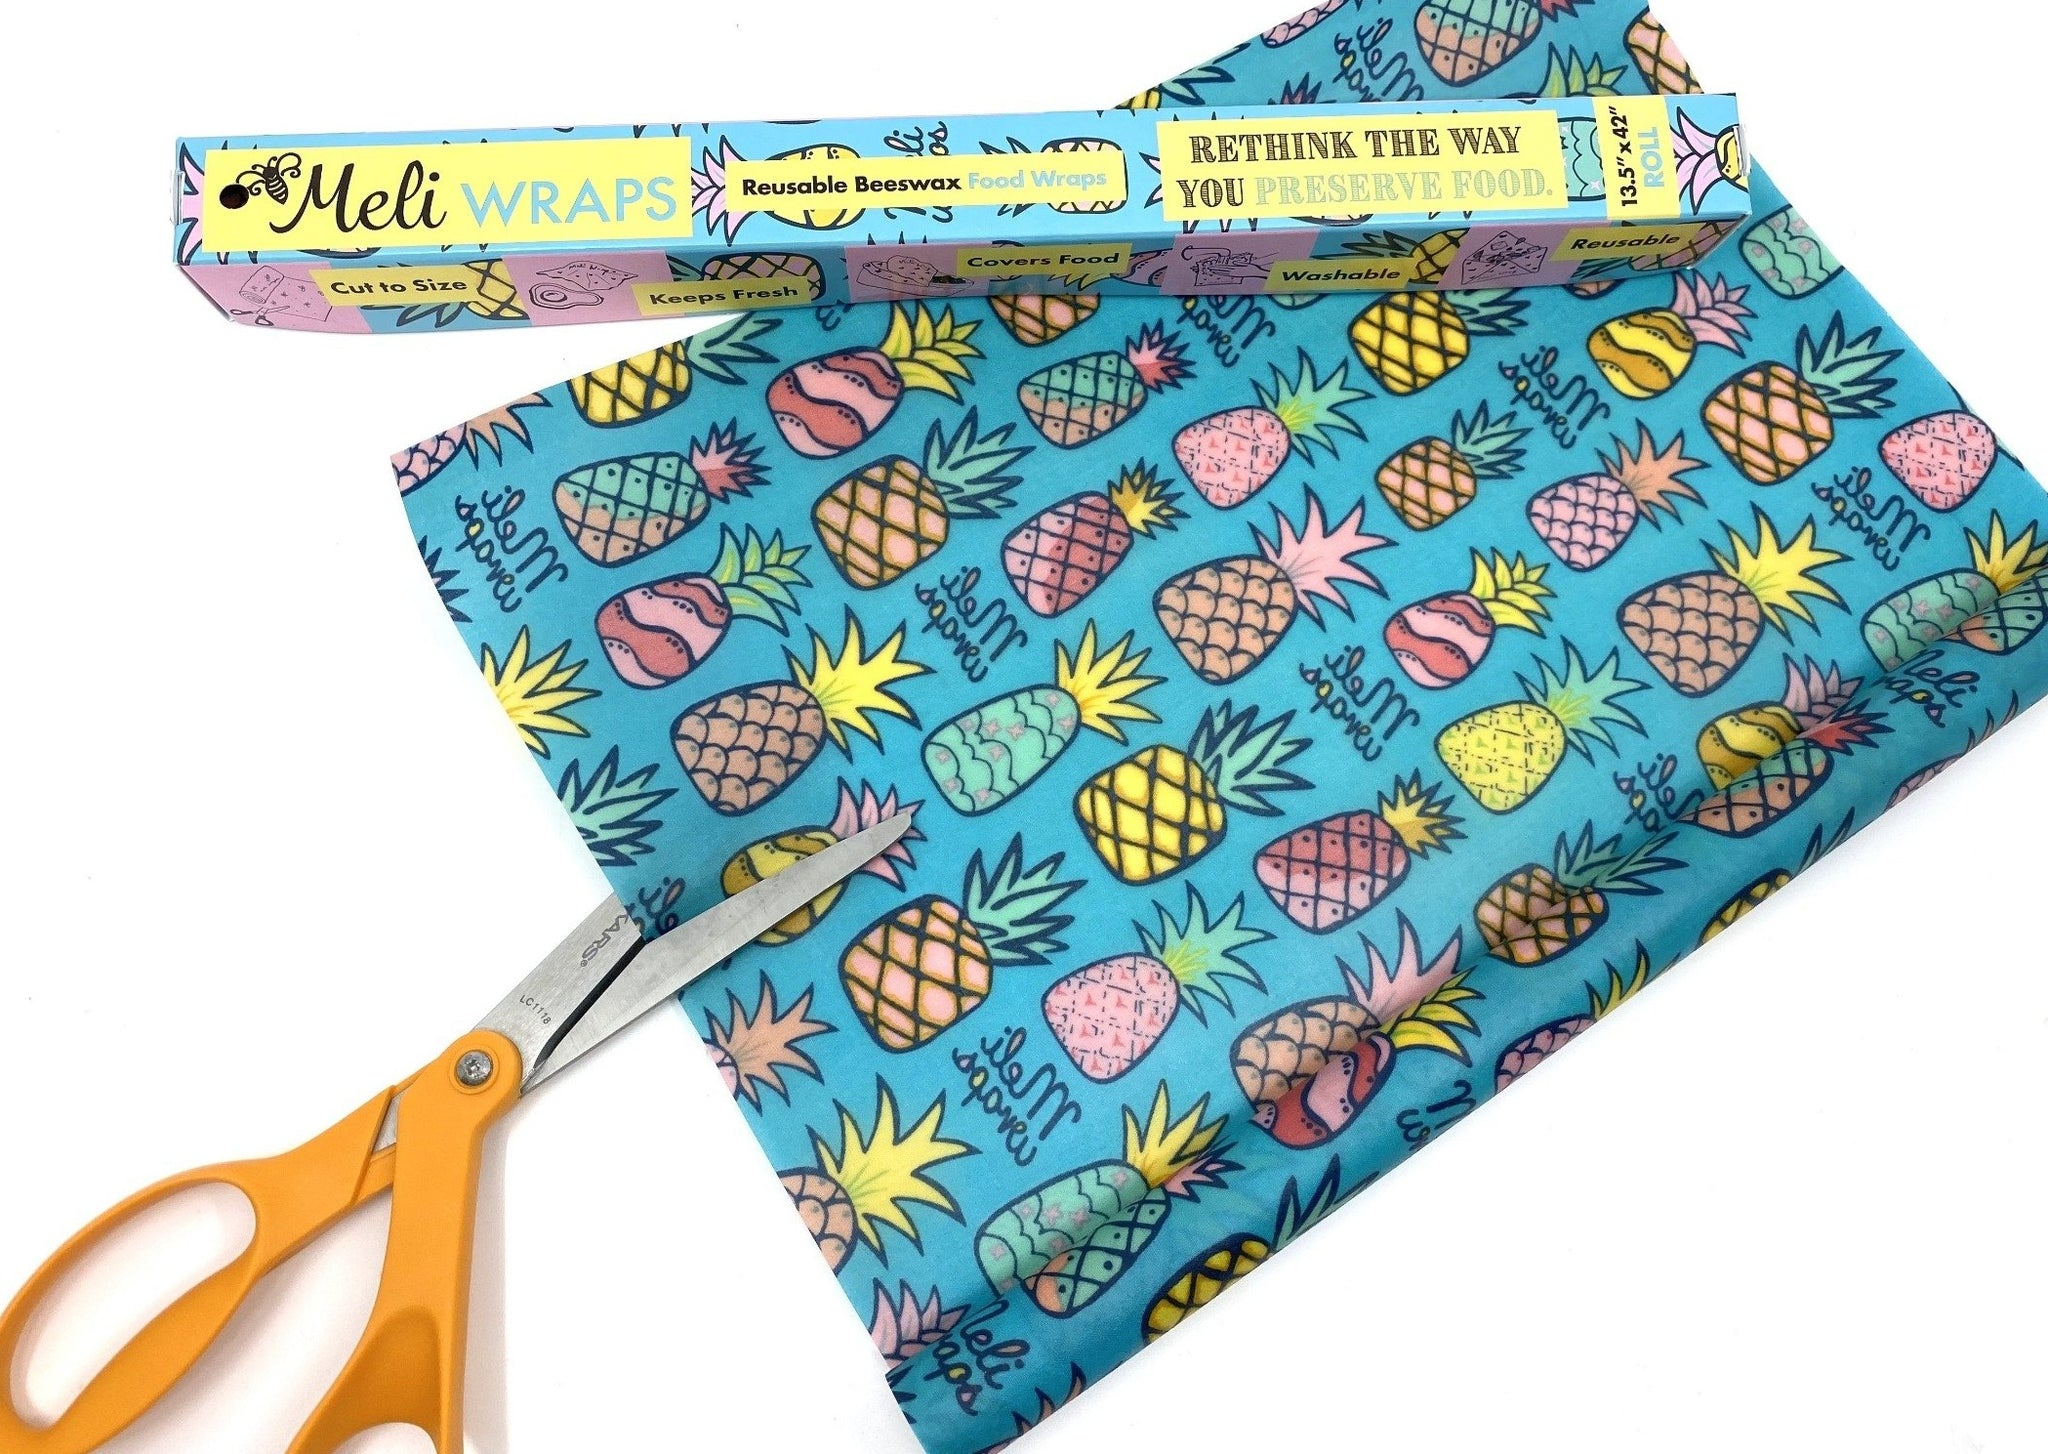 Meli Wraps Beeswax Wrap Bulk Roll - Pineapple Print